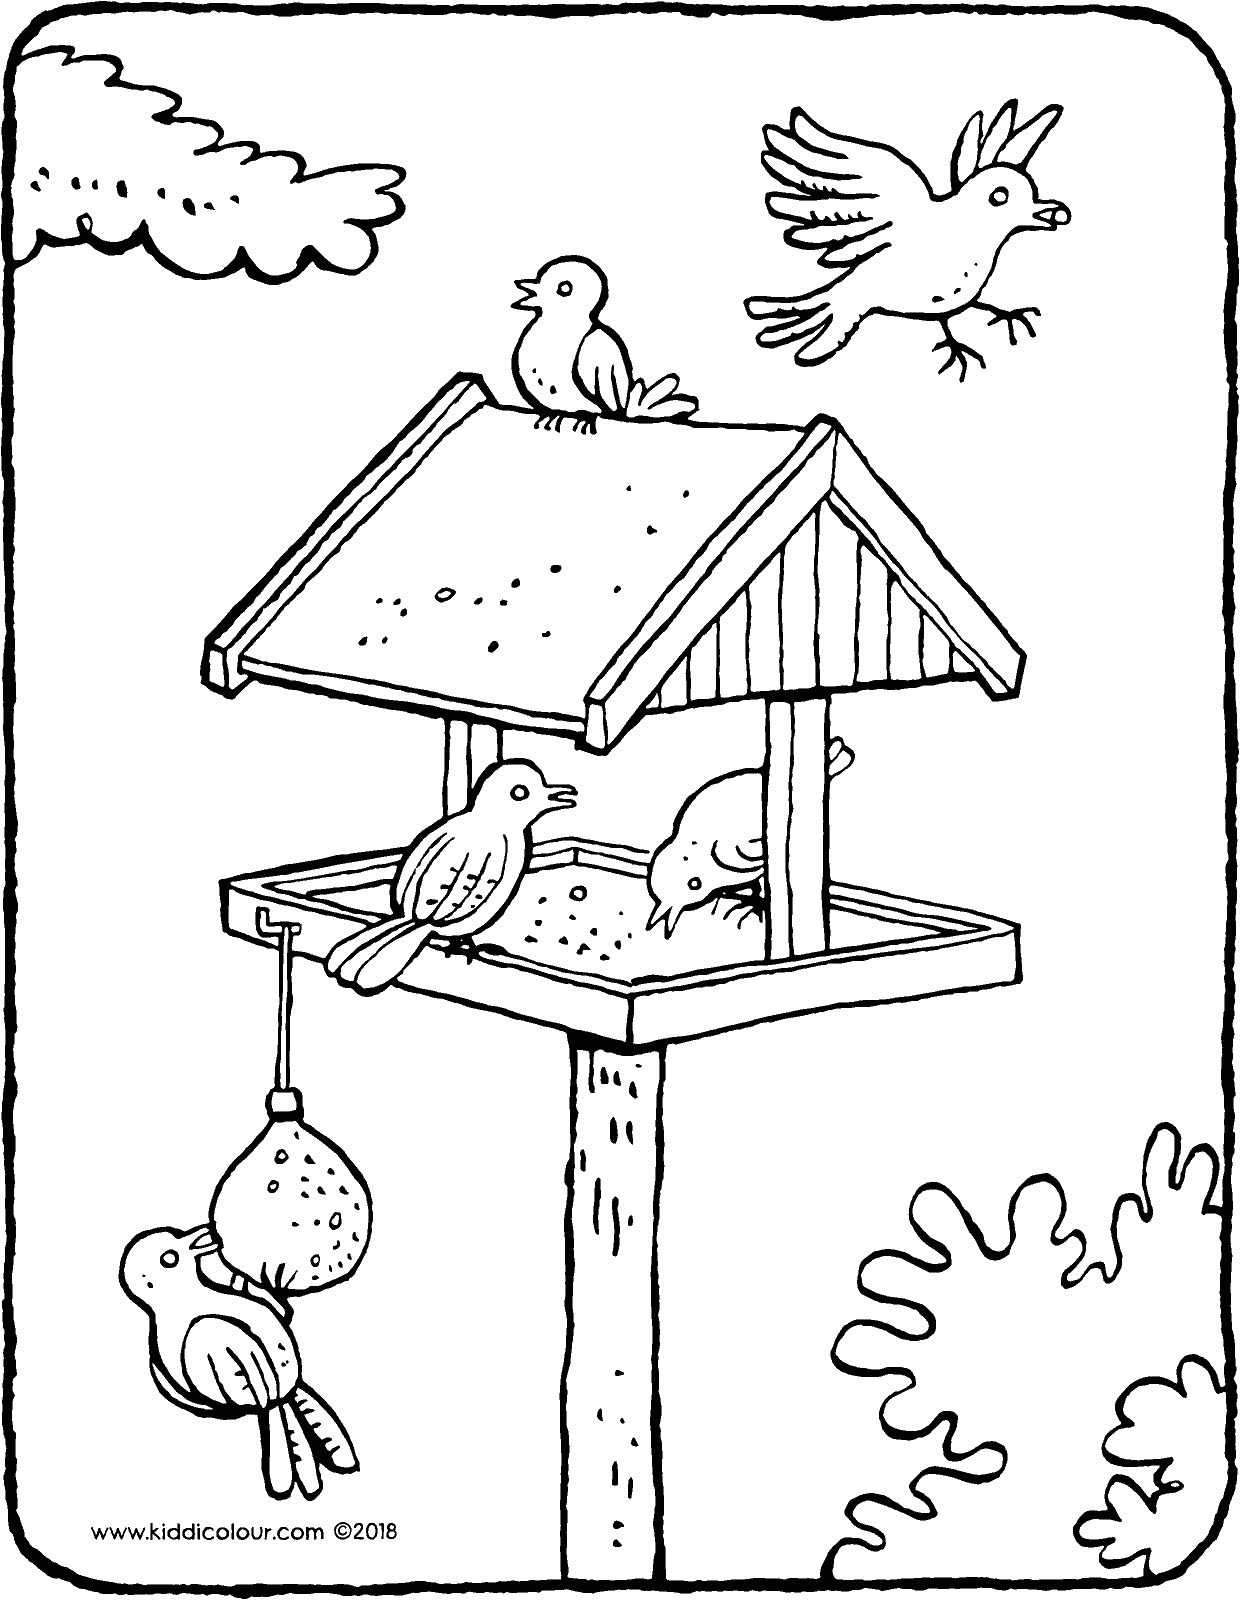 a bird table with birds colouring page drawing picture 01V